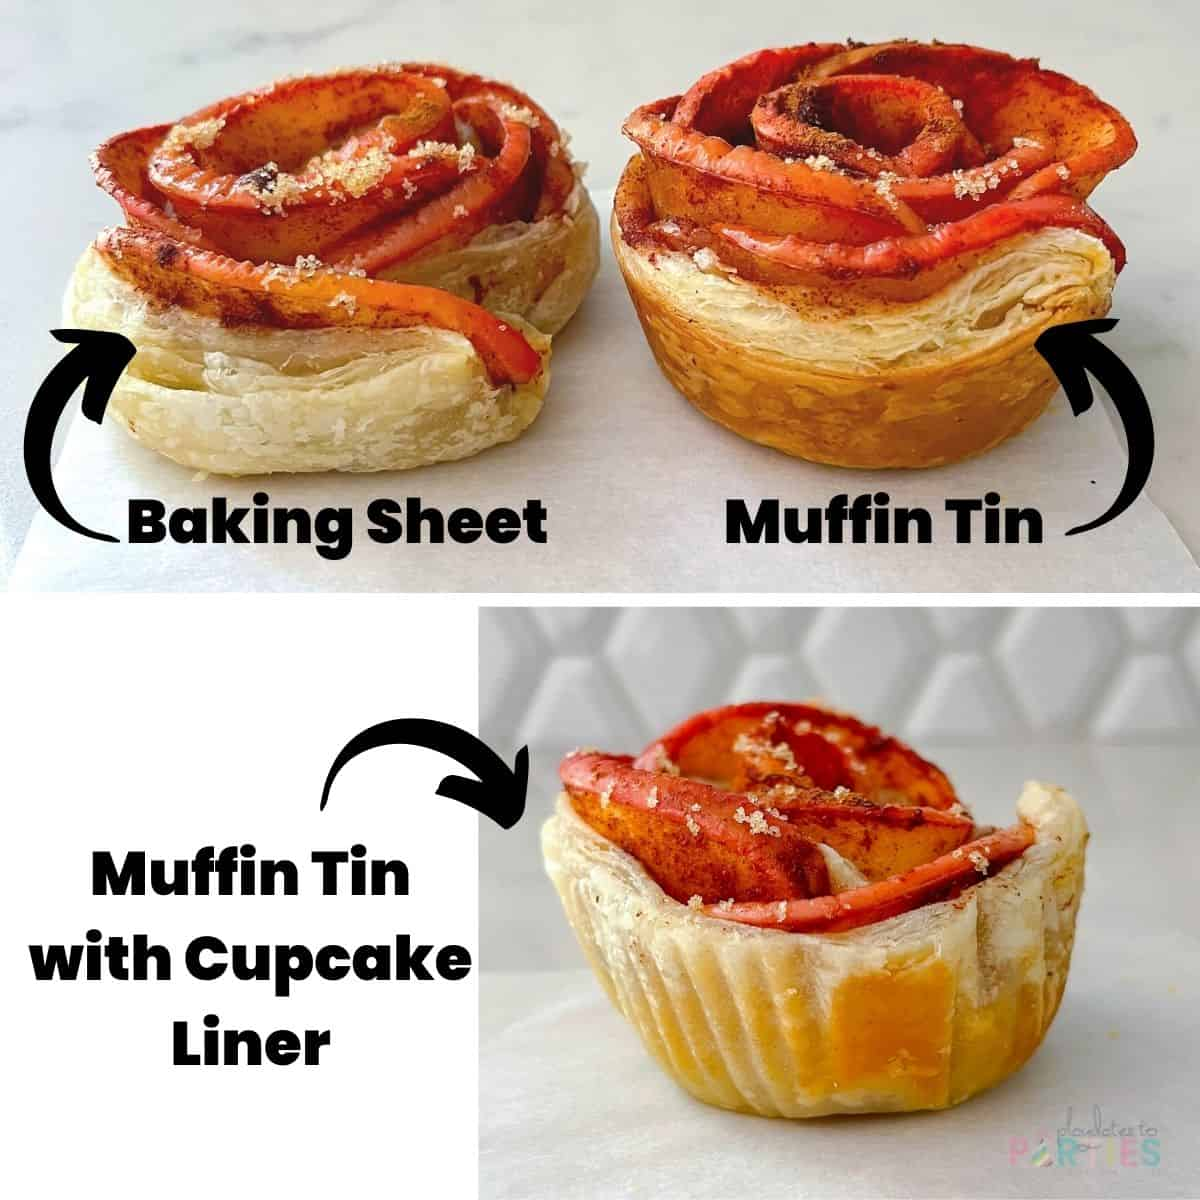 collage showing how apple roses bake on a baking sheet, in a muffin tin, and in a muffin tin with a cupcake liner